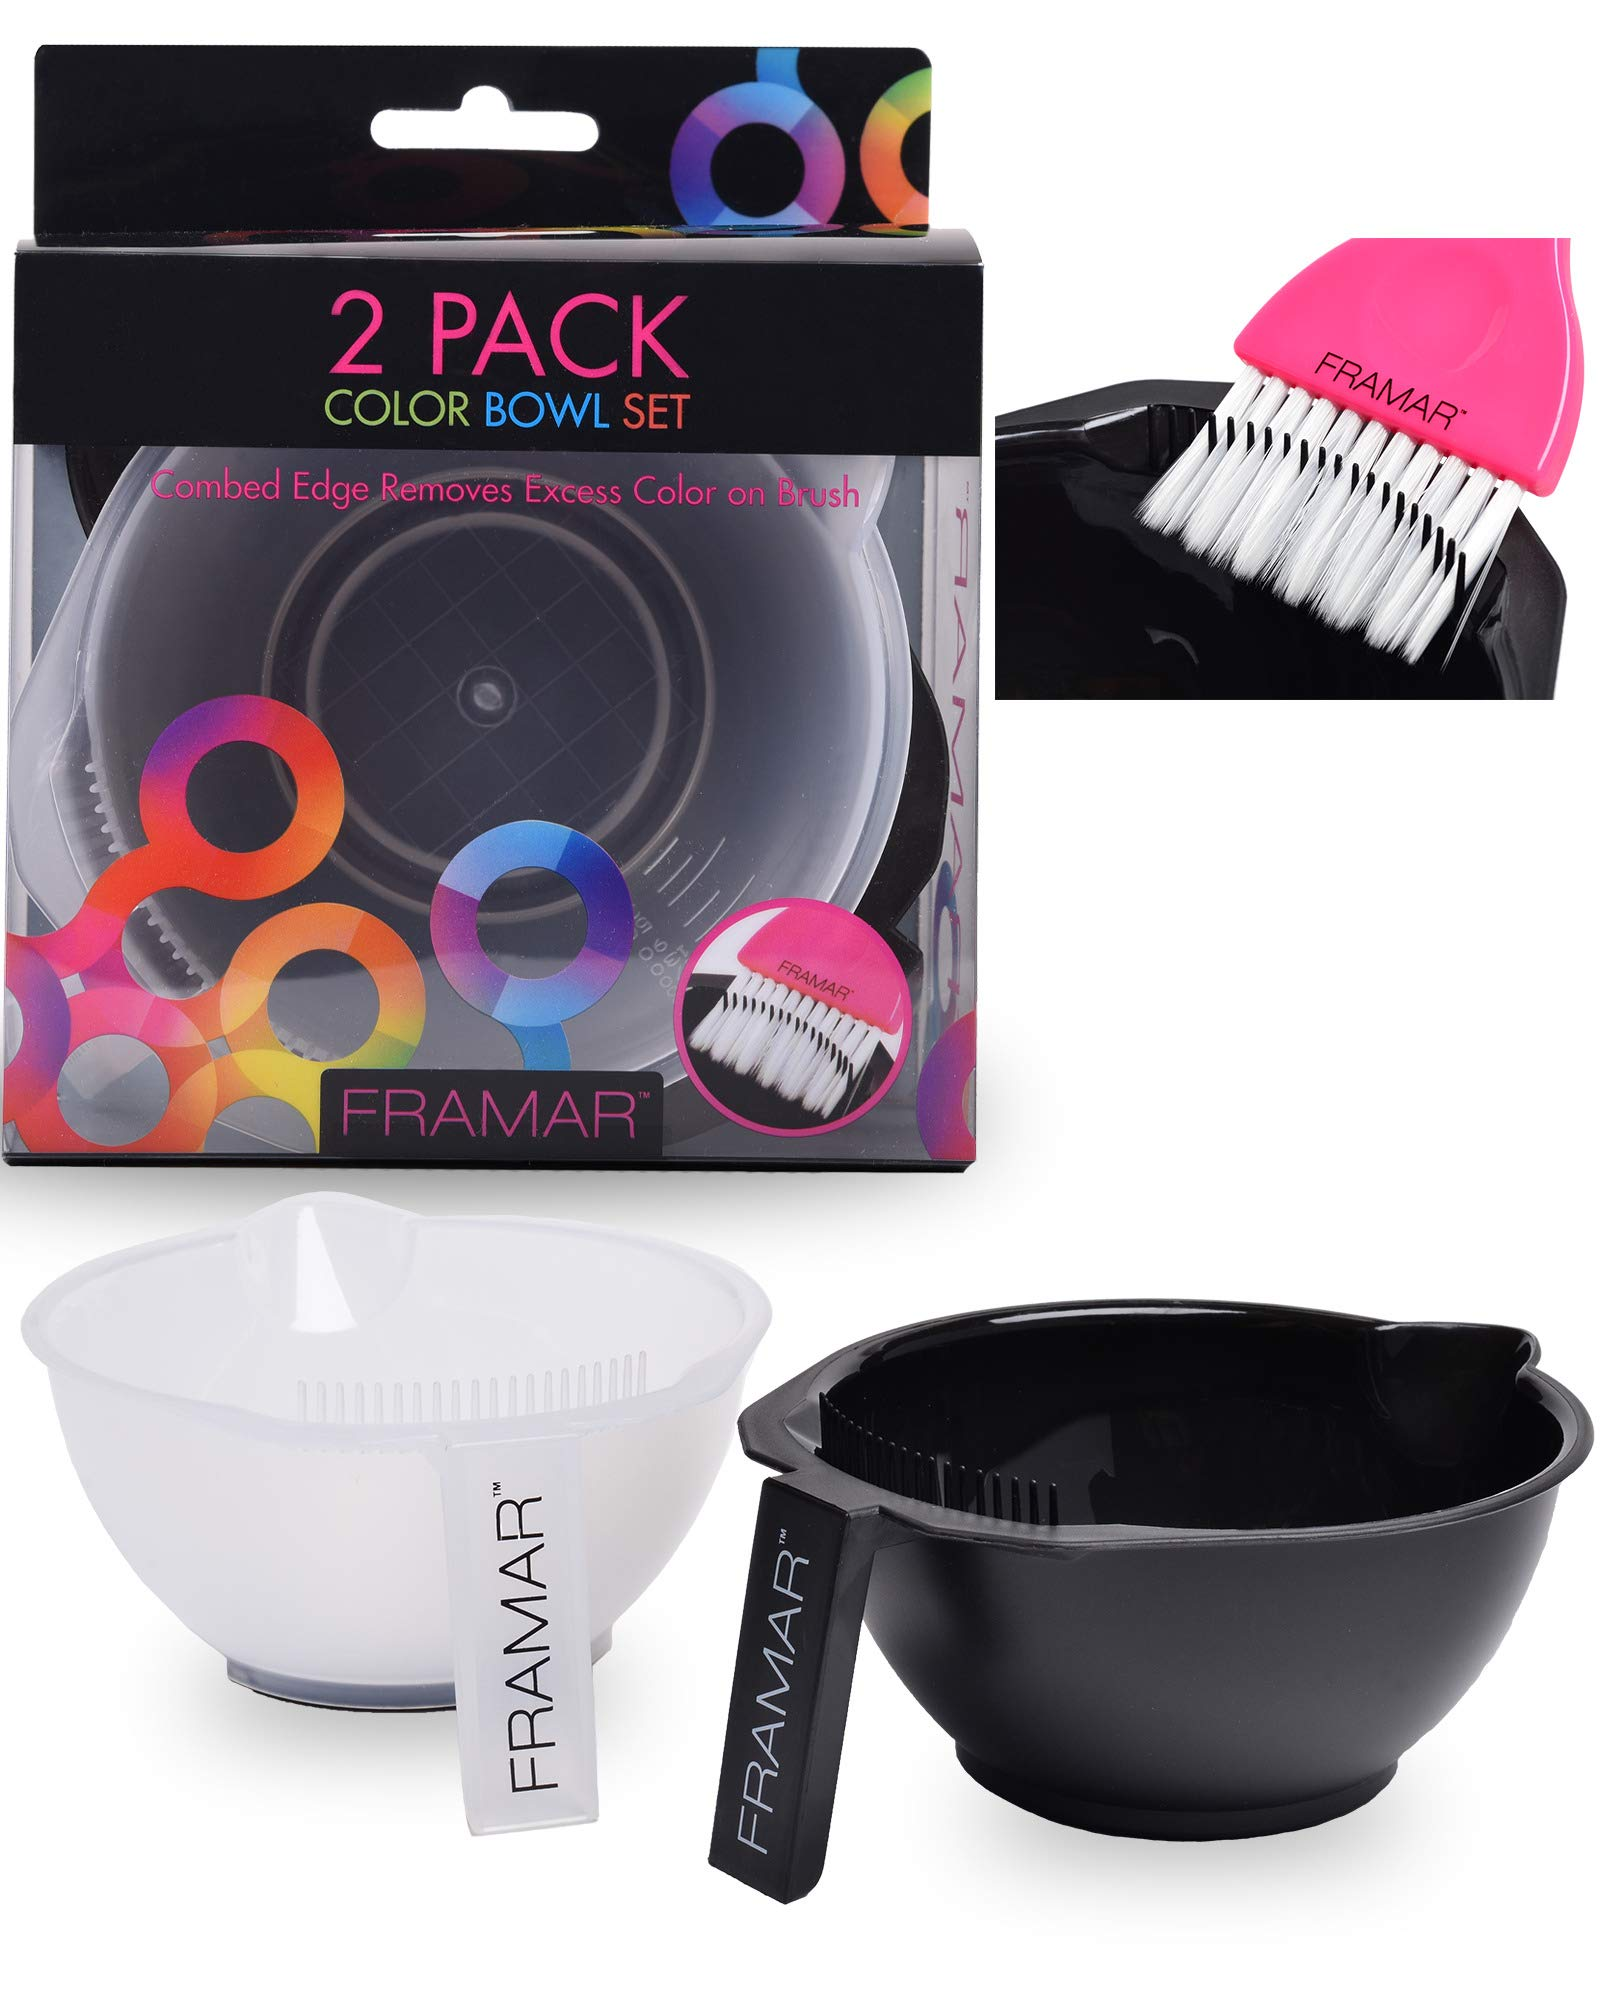 Framar Color Bowl with Cleaner Set – Mixing Bowls – For Hair Color, Hair Bleach, Hair Dye, Coloring – Coloring Set – 2 Pack Bowls